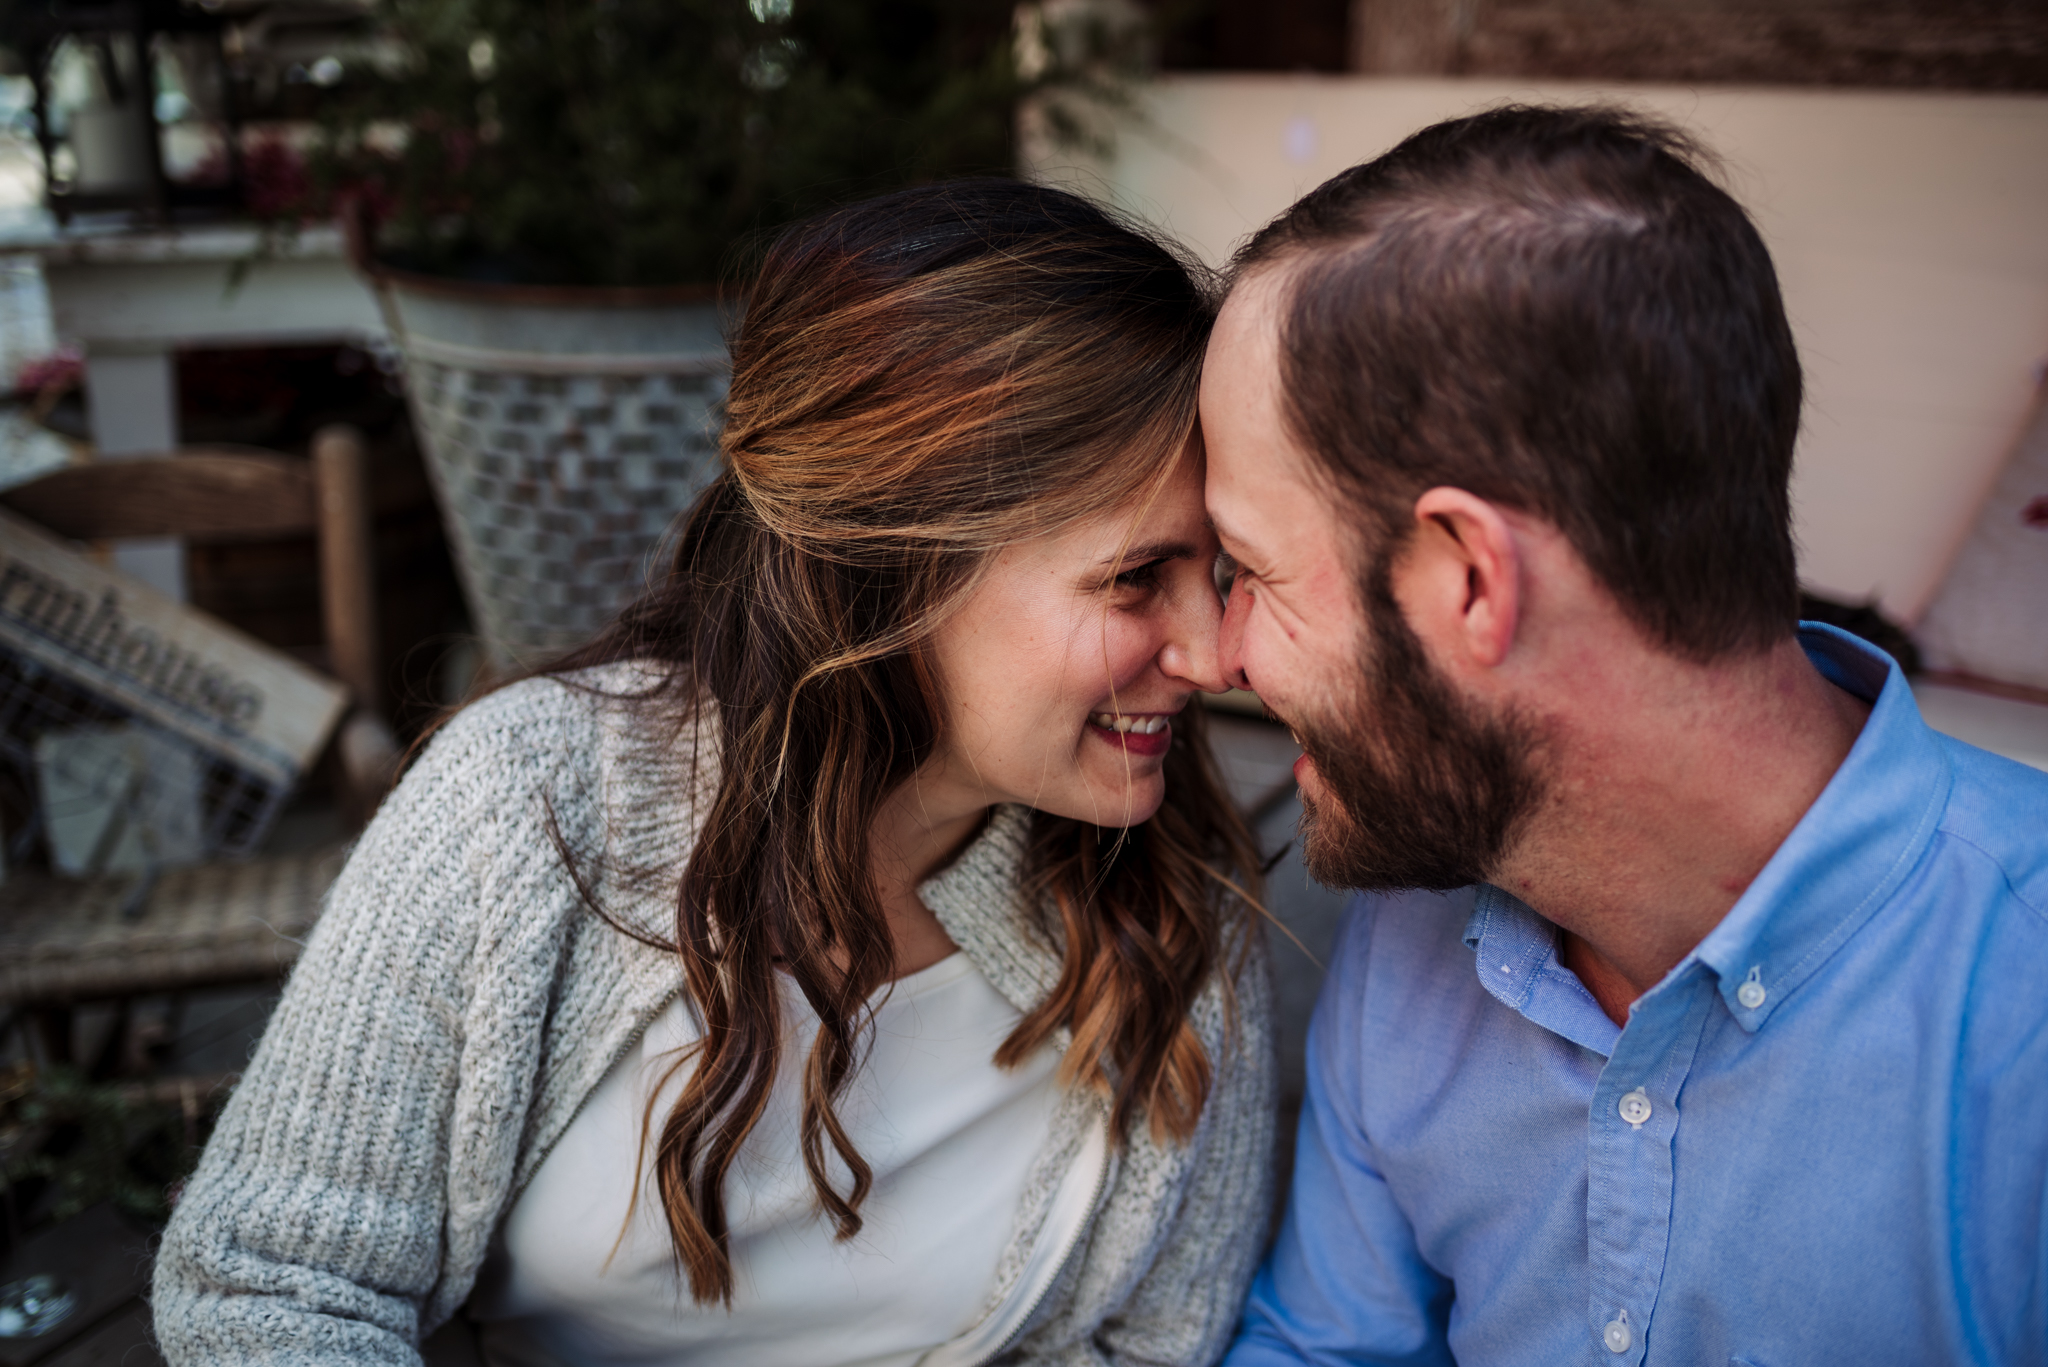 getting-close-and-touching-foreheads-during-their-engagement-session.jpg